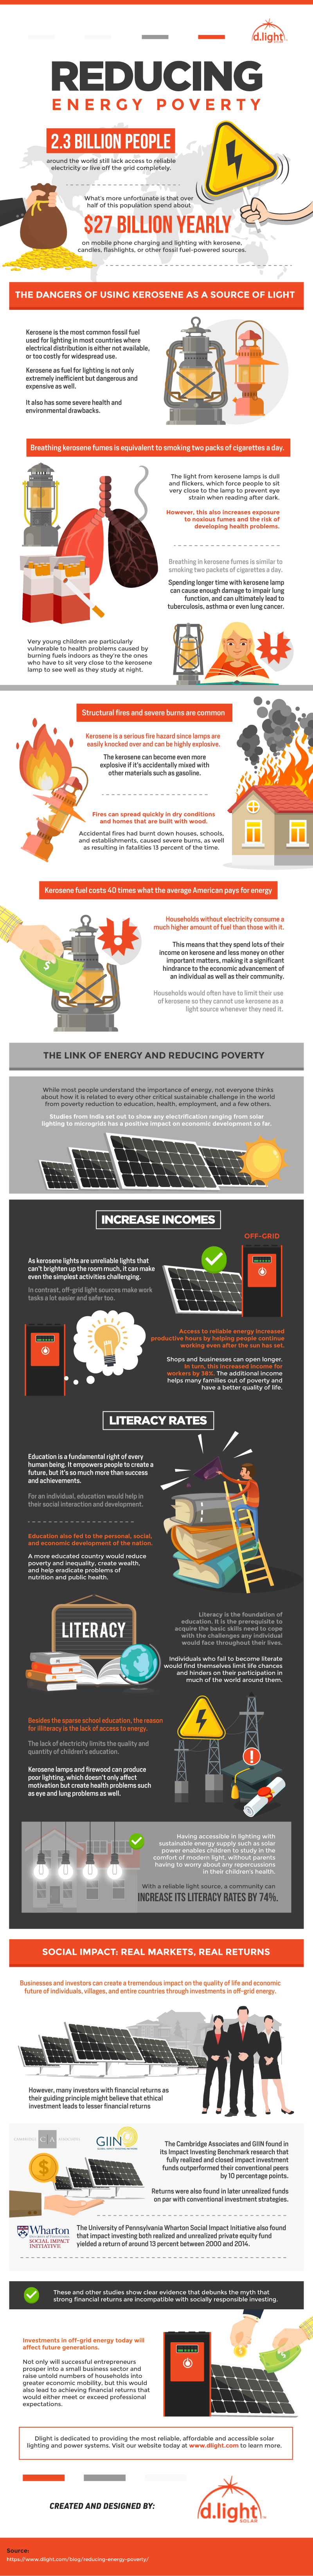 Reducing Energy Poverty [Infographic] | d light